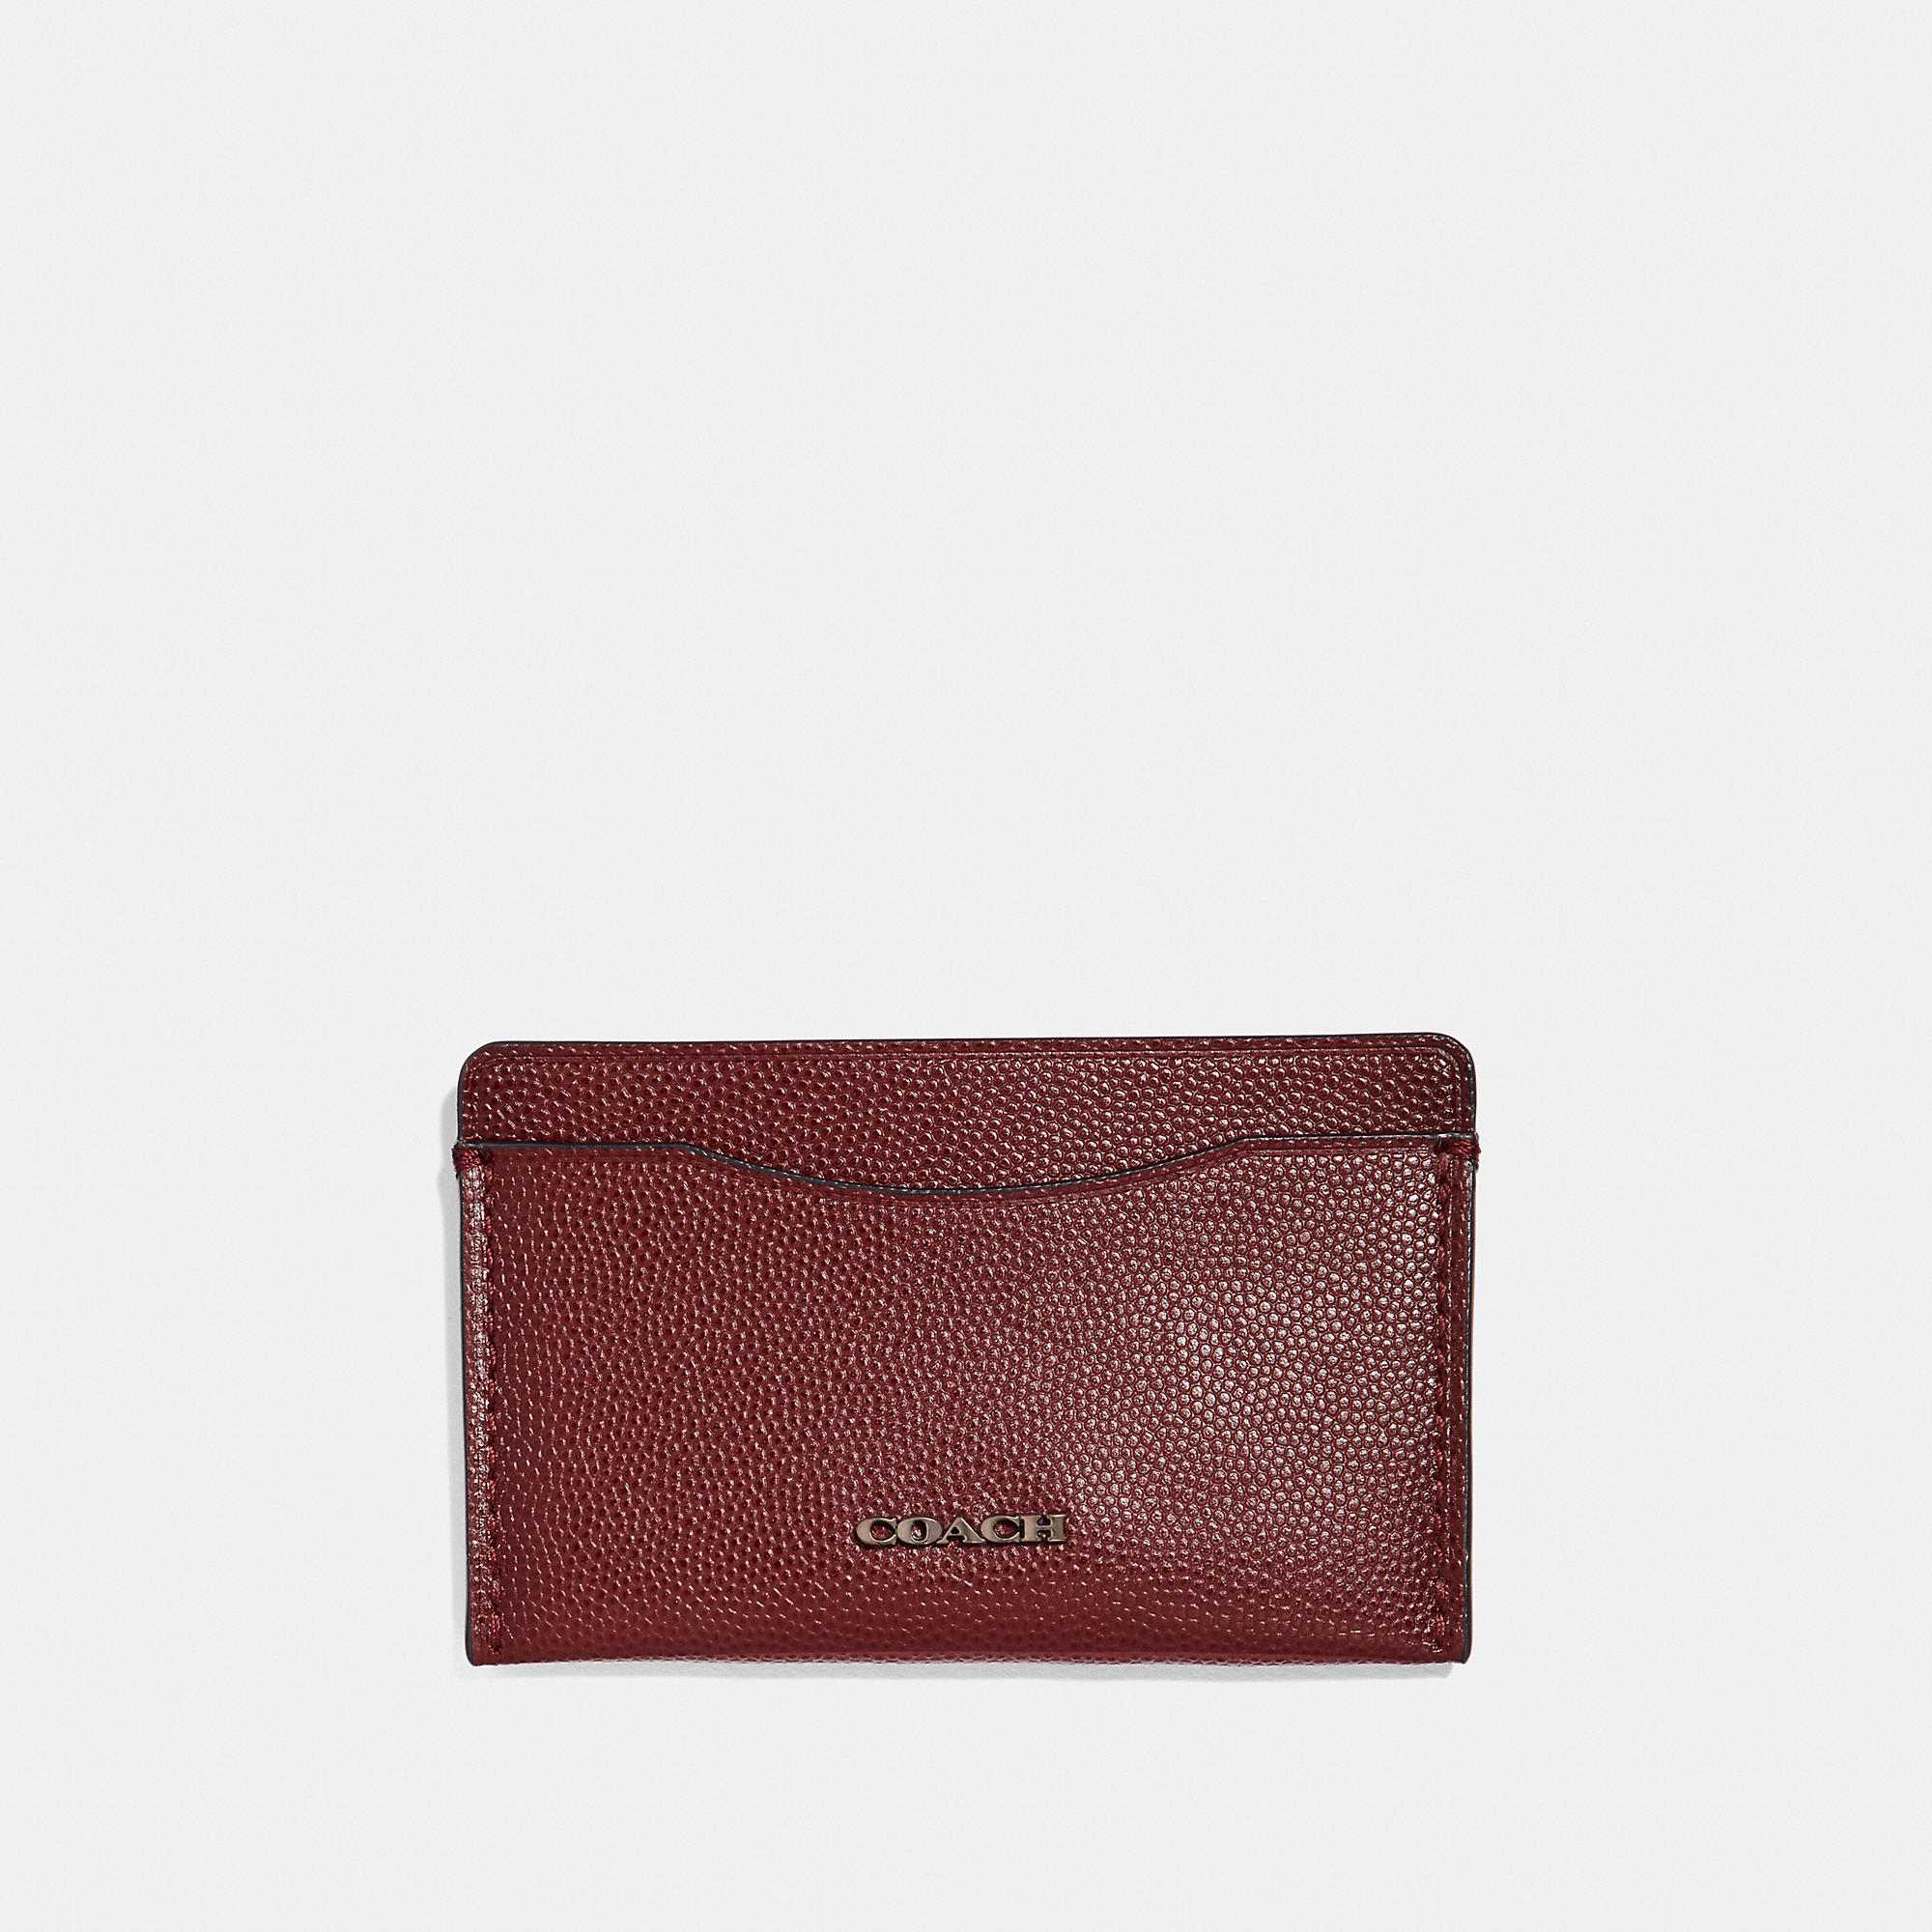 74e43a168d COACH Men's Small Card Case in 2019   Products   Leather card case ...